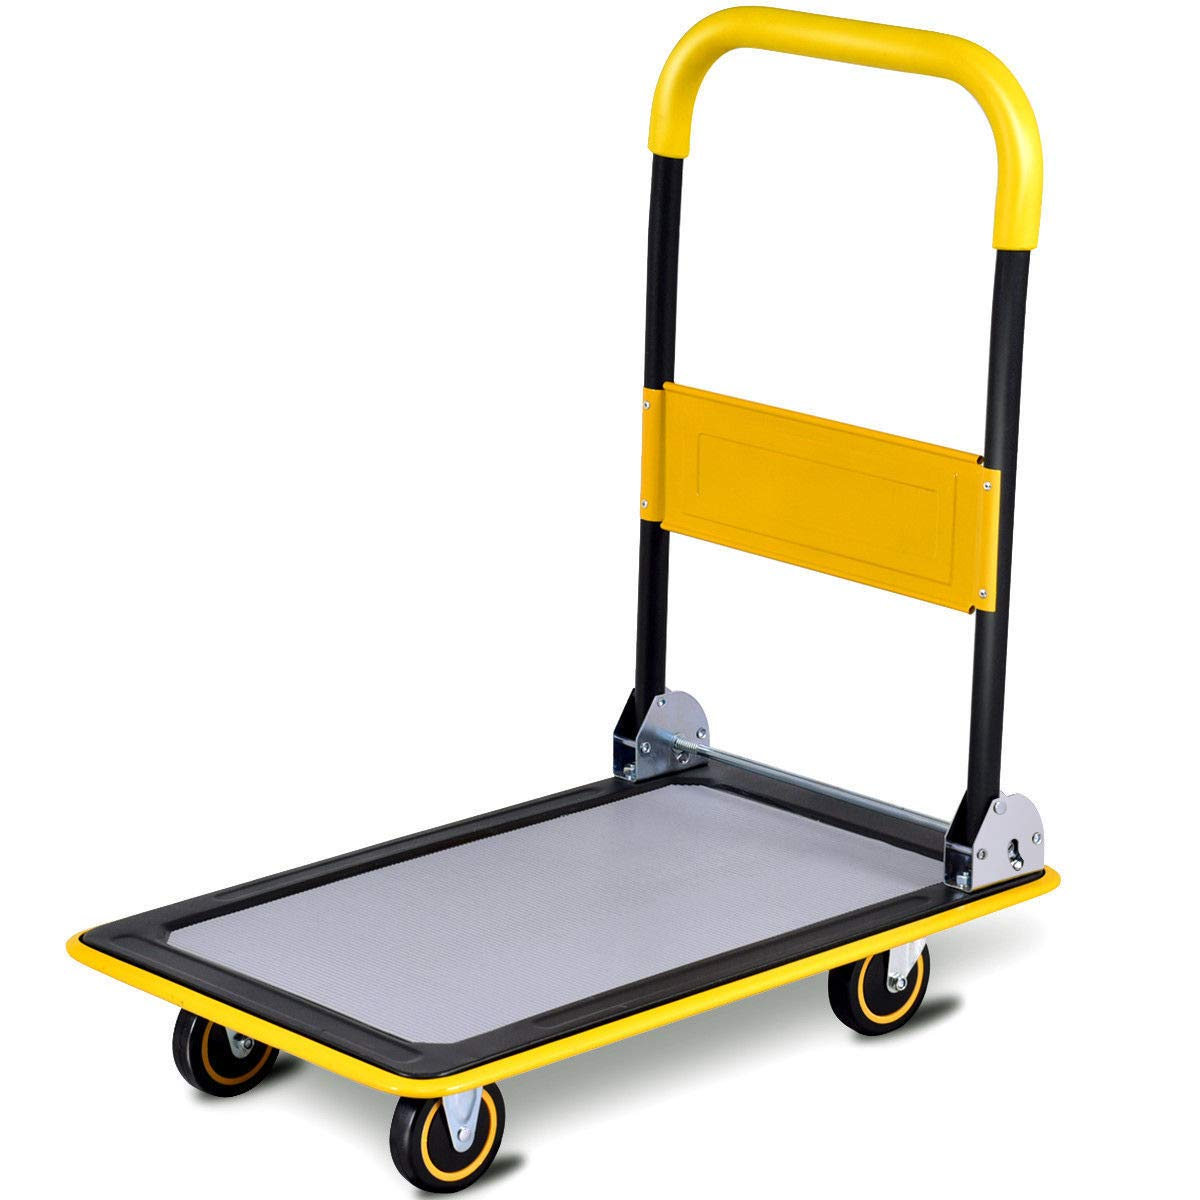 Seleq Foldable Platform Push Cart Dolly with Rubber Grip Handrail - 330 lbs Capacity